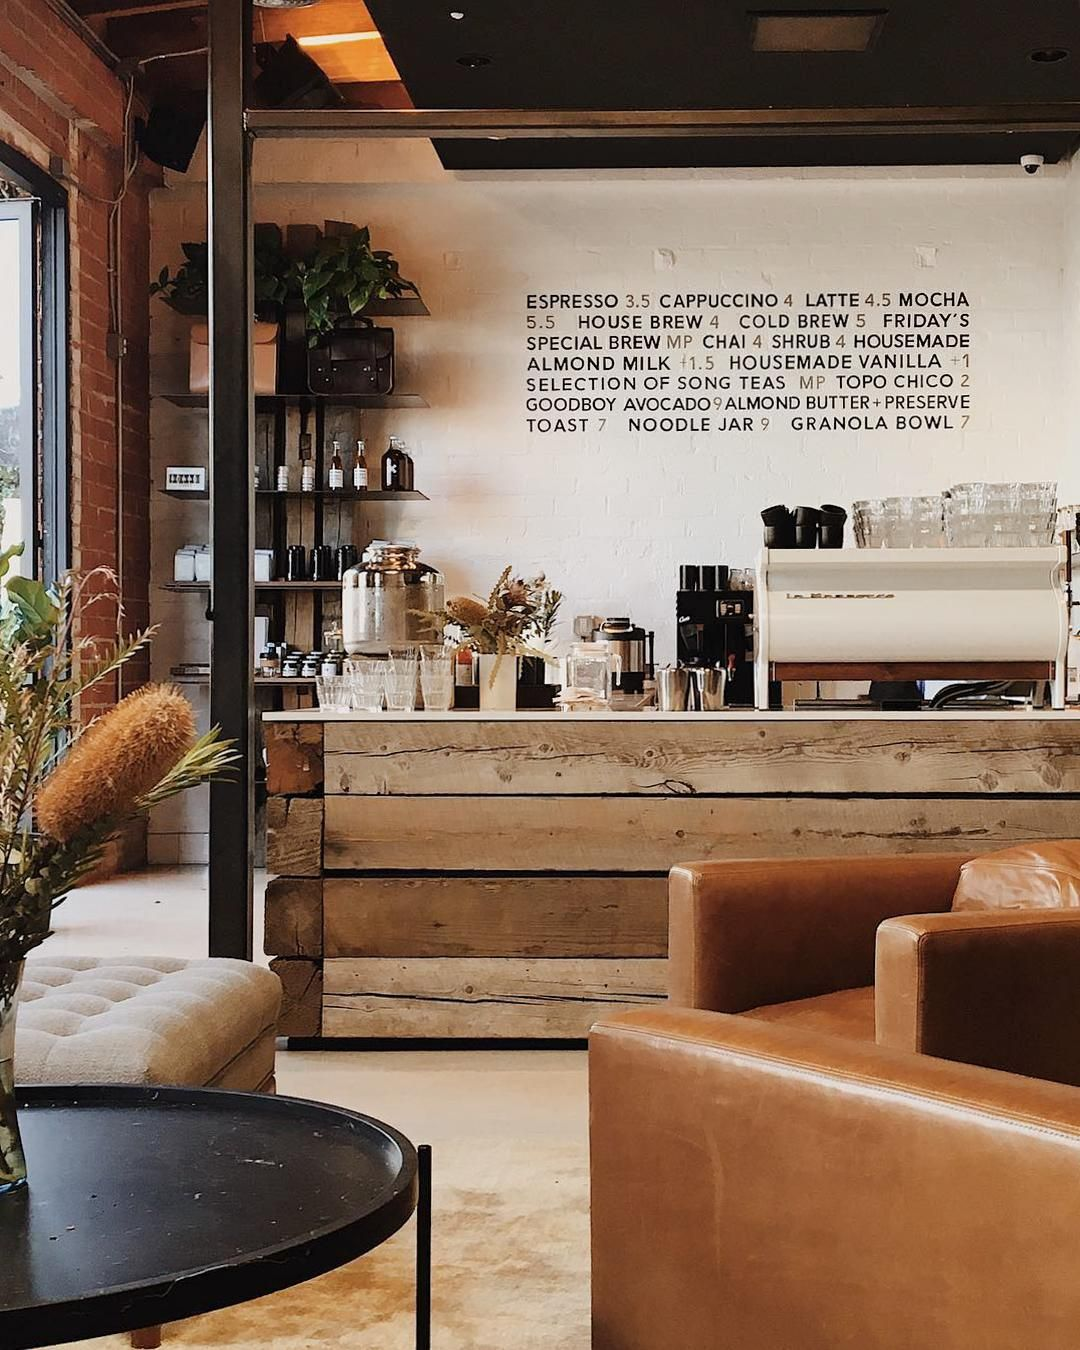 2018 S Hottest New Cafe Openings Across The Globe Coffee House Interiors Cafe Interior Design Small Coffee Shop